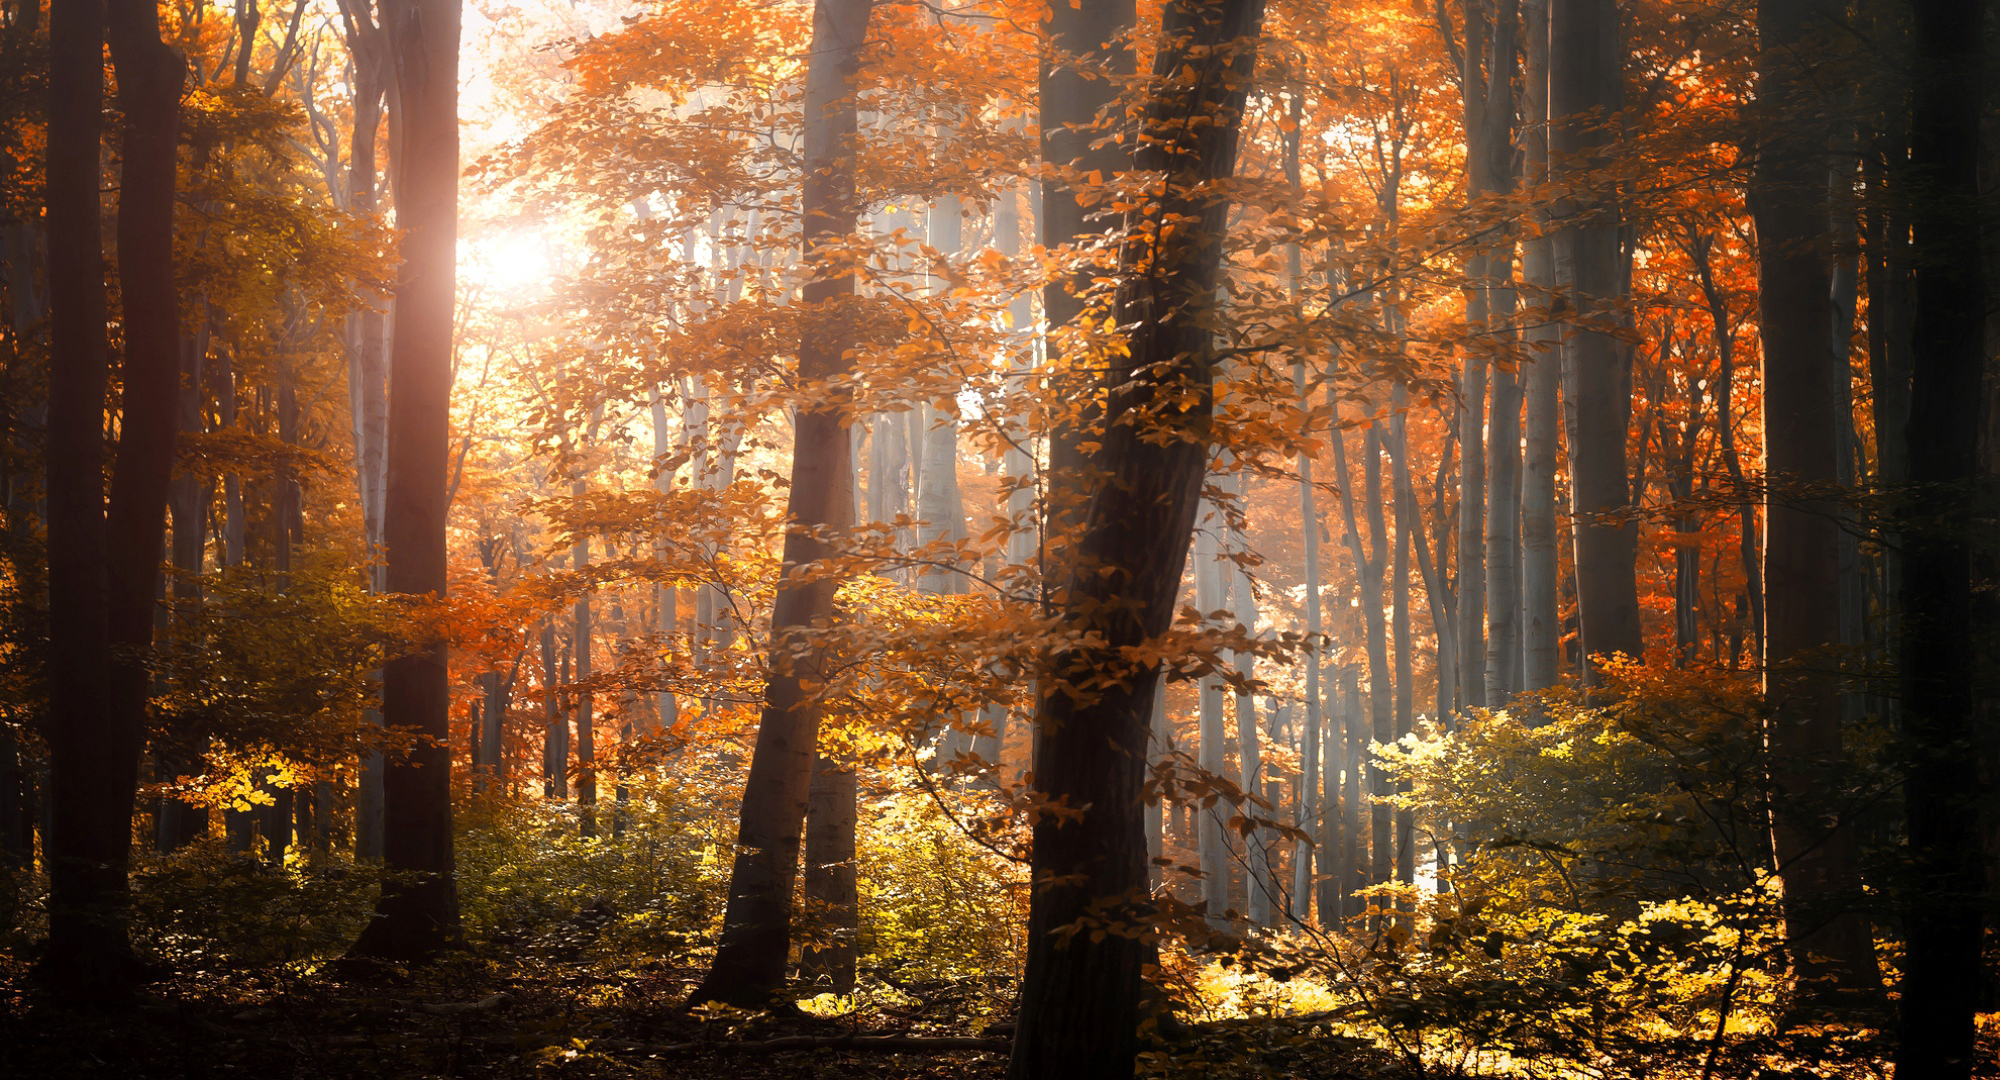 Fall Desktop Wallpaper Images Forest Autumn Foliage Trees Leaves Orange Yellow Light